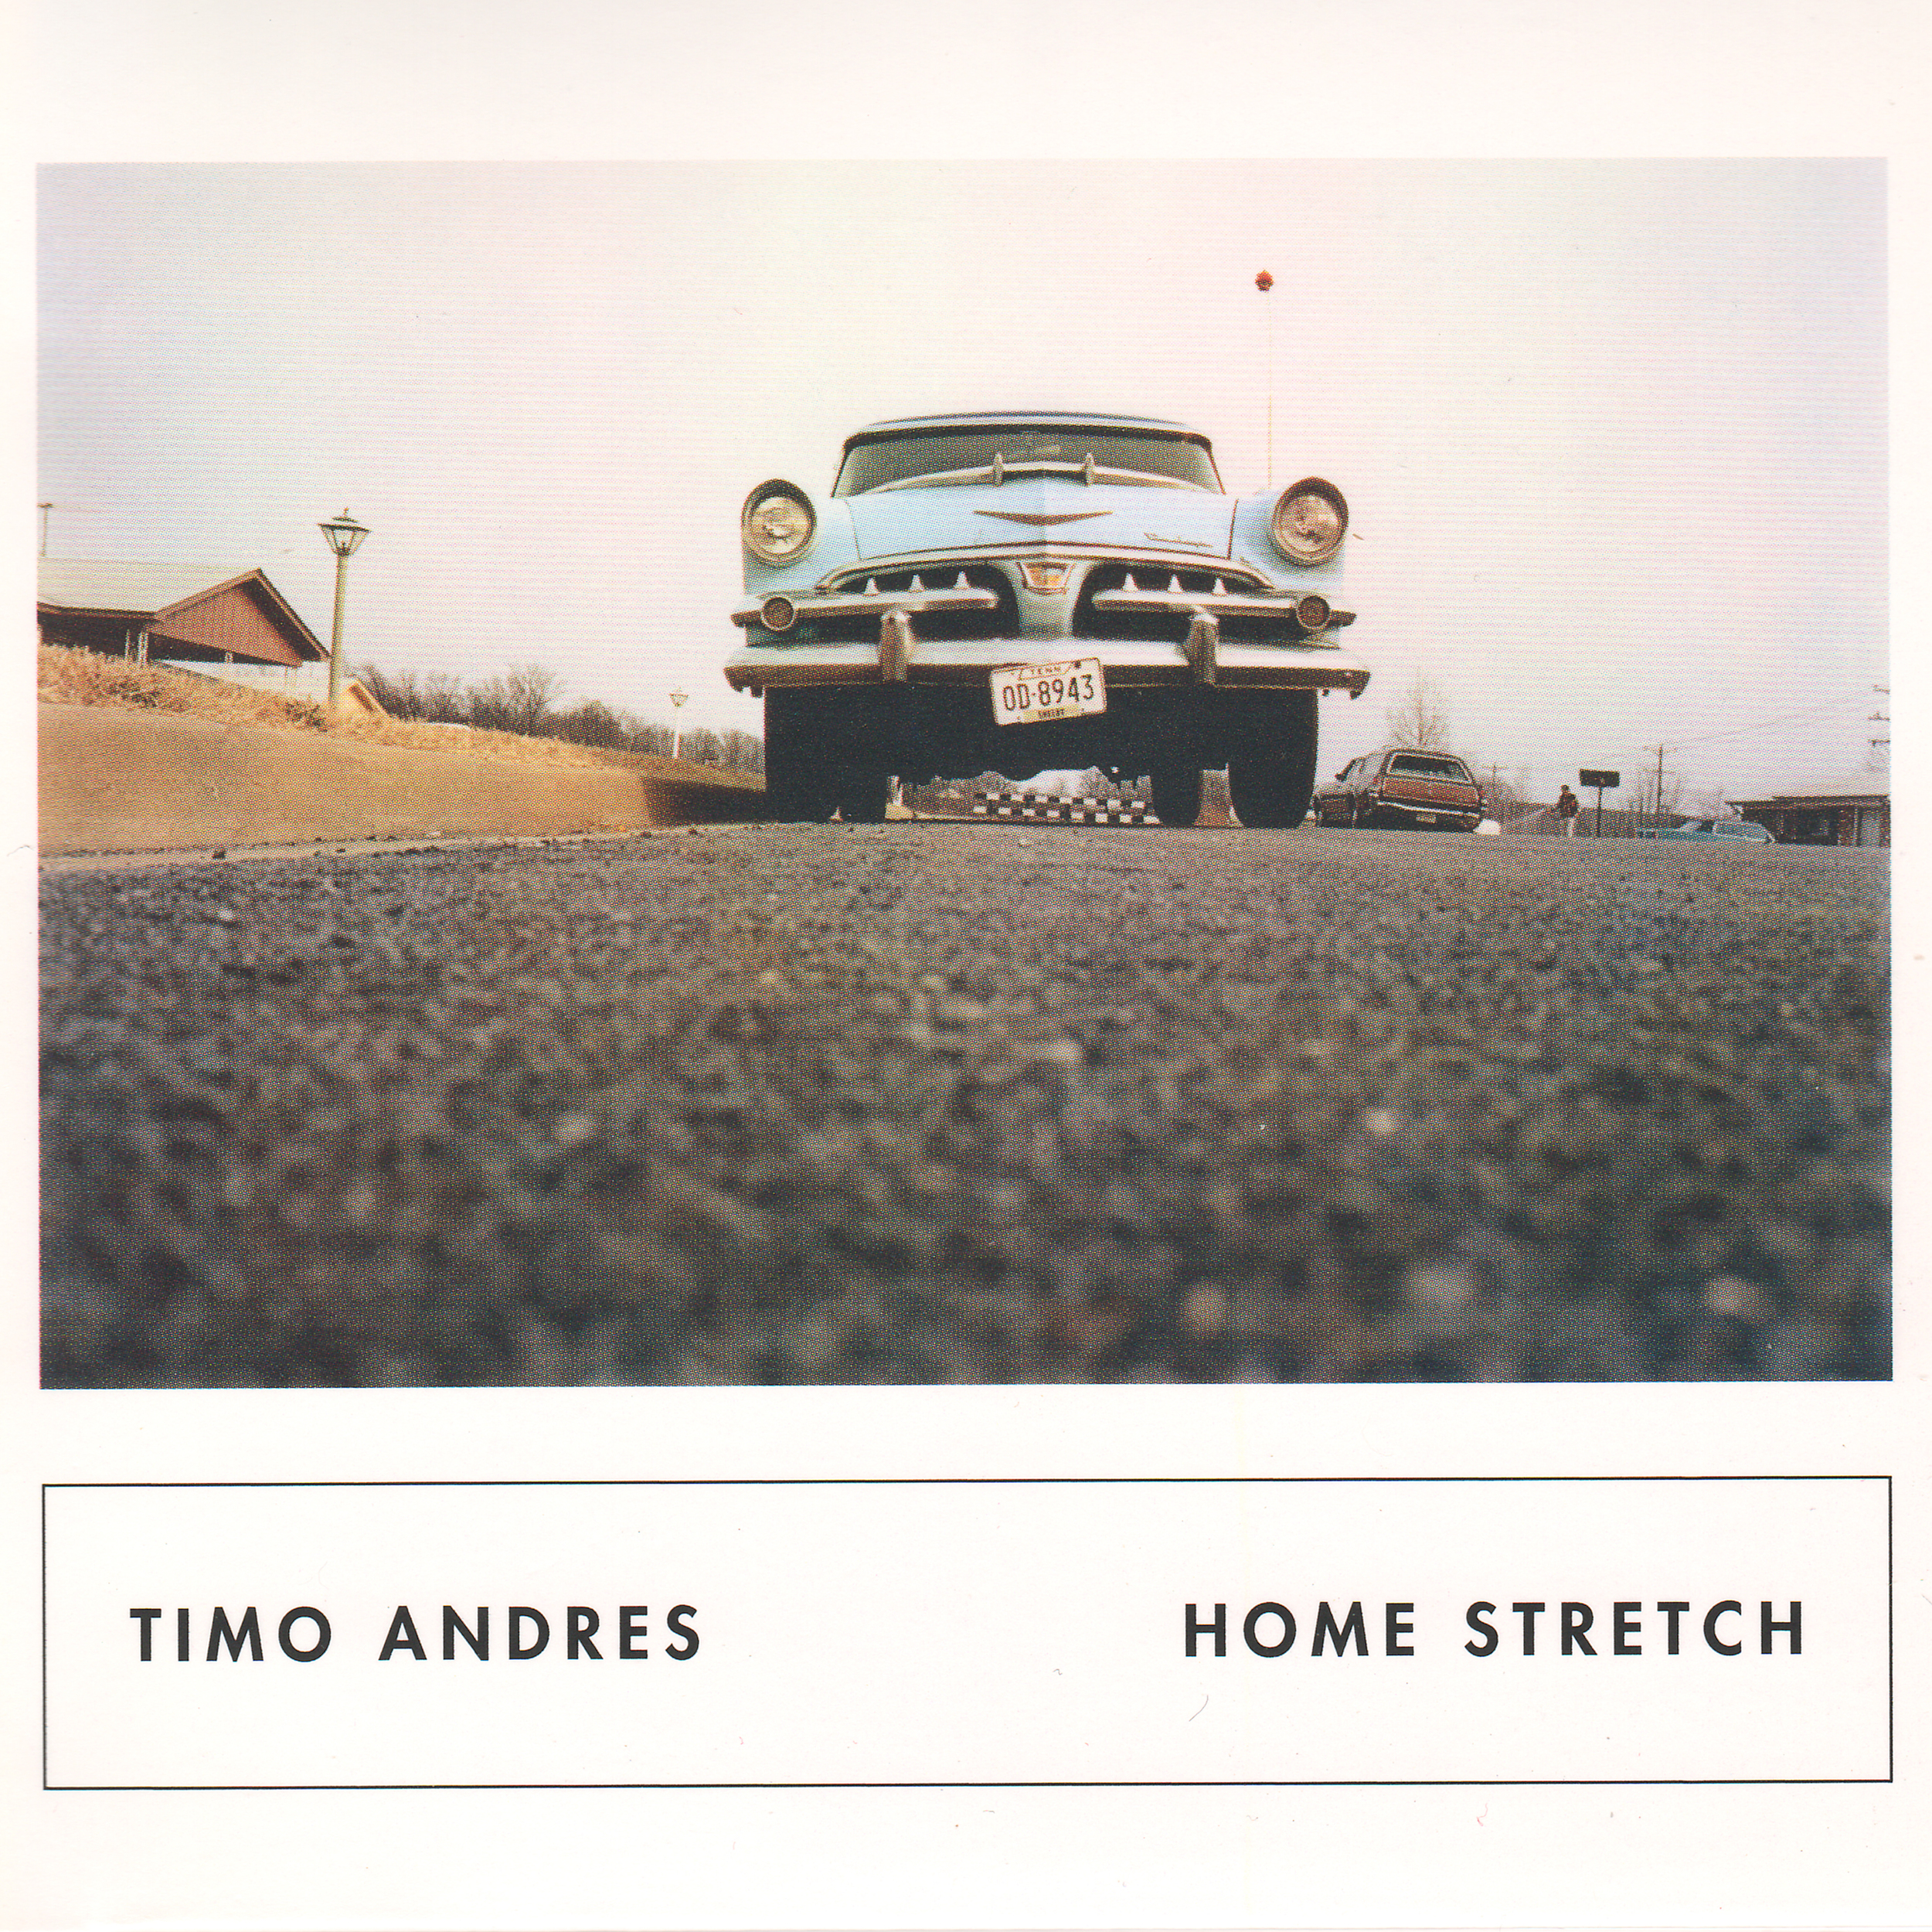 timo andres home stretch.jpg